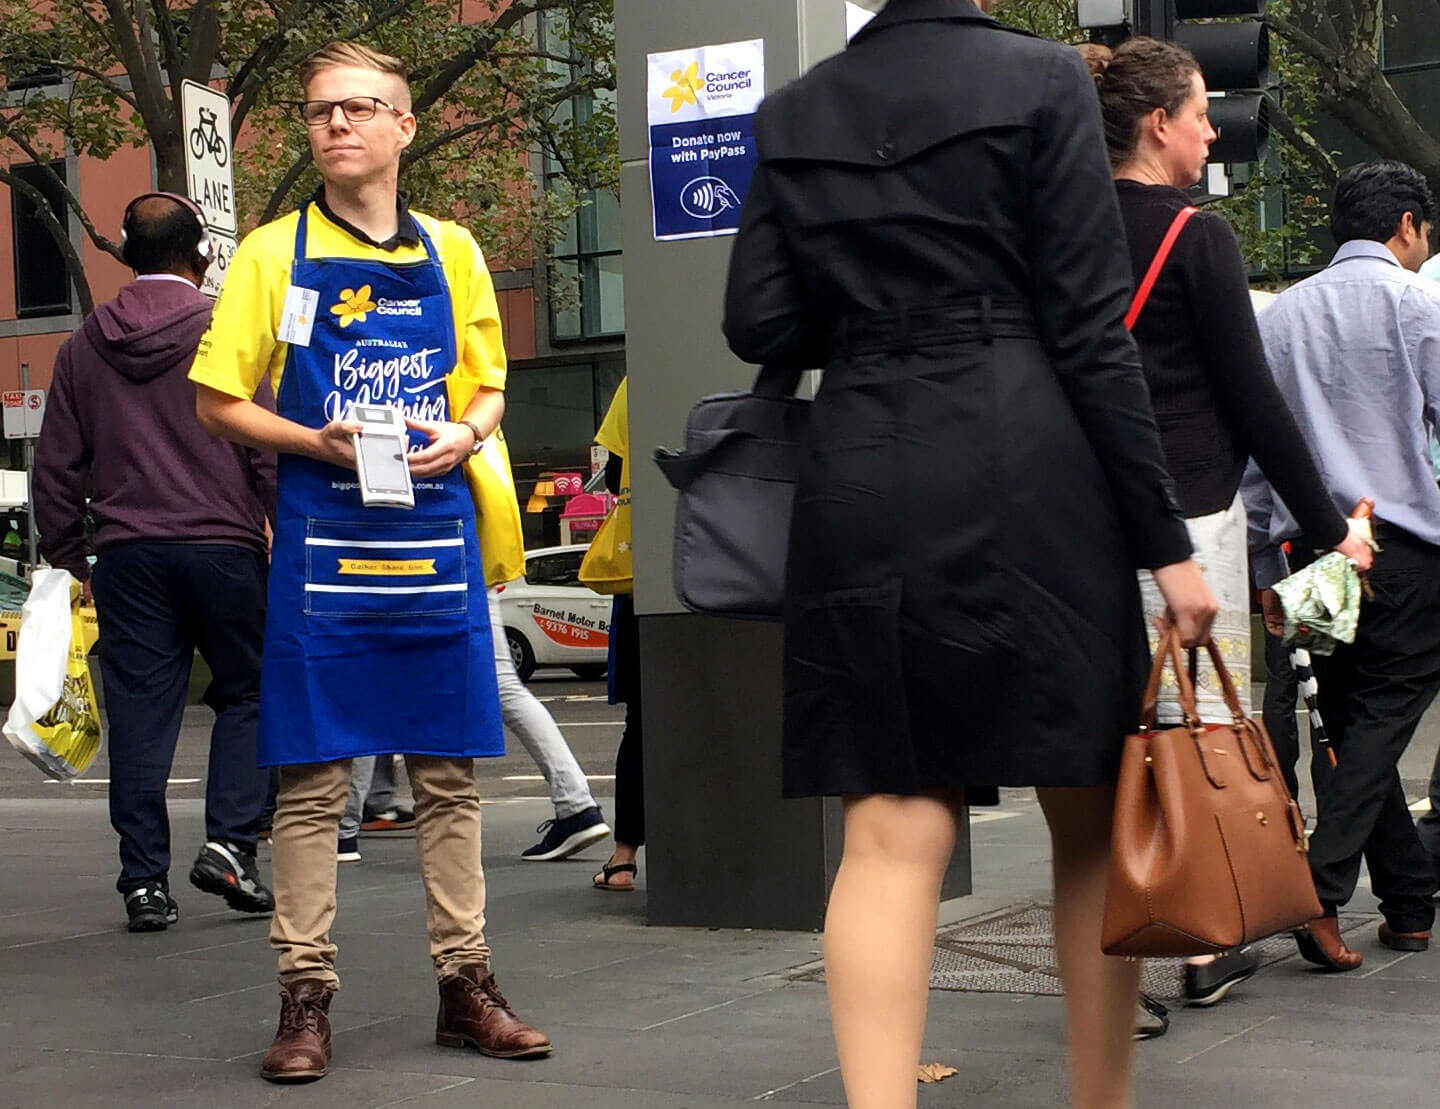 Volunteers from the Cancer Council collecting donations in the Melbourne CBD